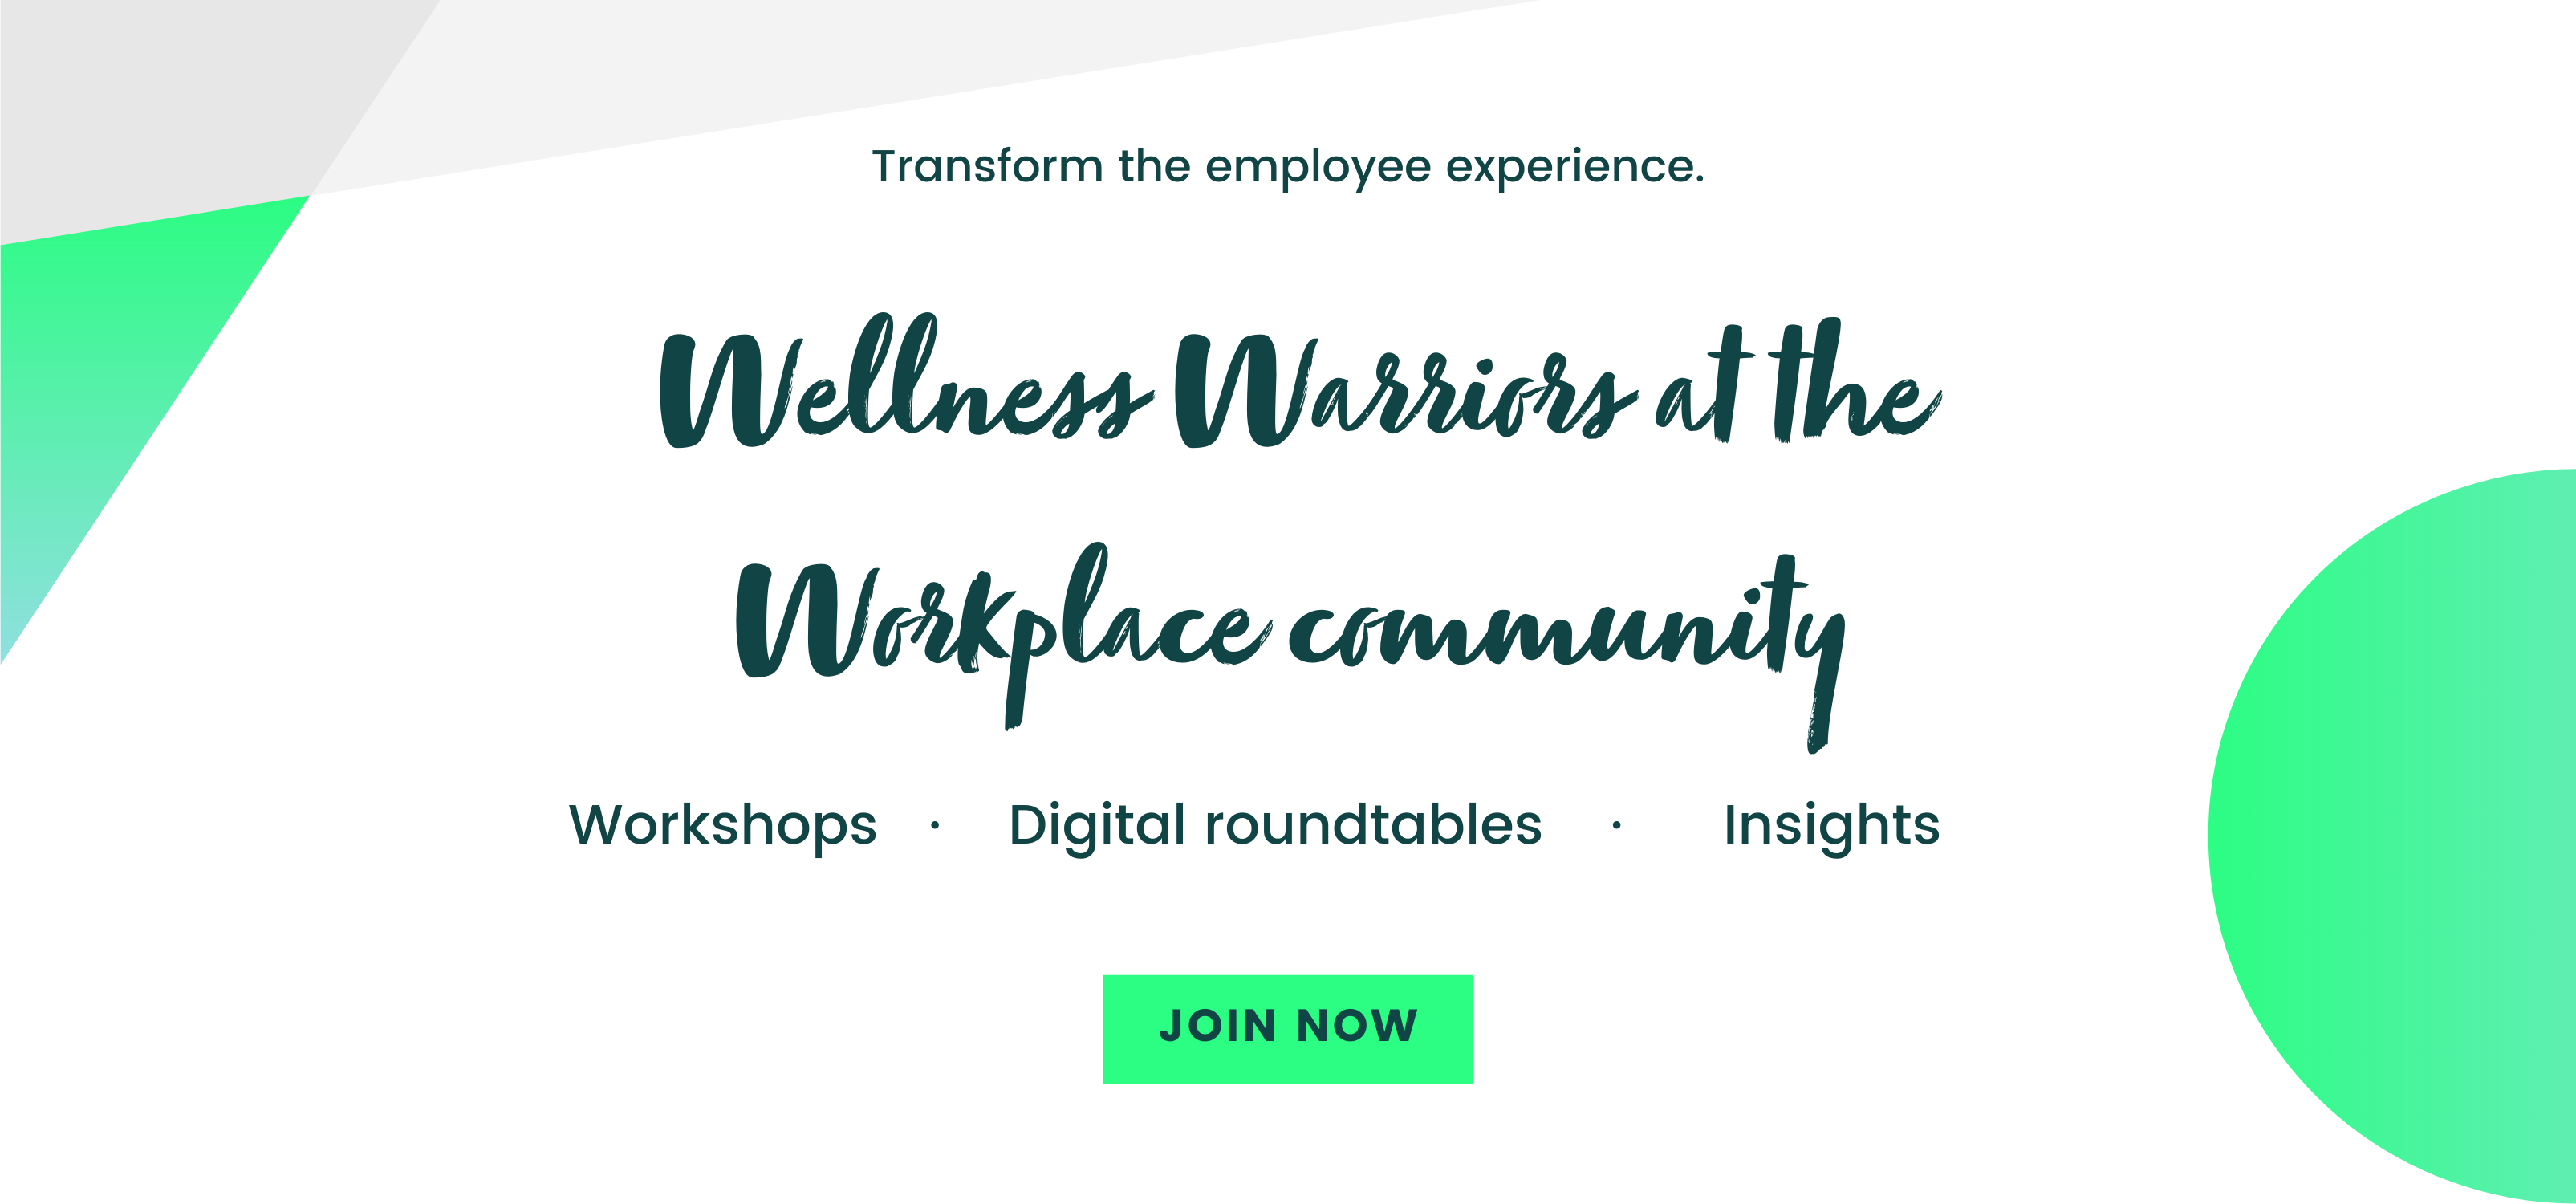 Join the Wellness Warriors at work community. Receive invites to workshops, roundtables and workplace wellbeing insights.